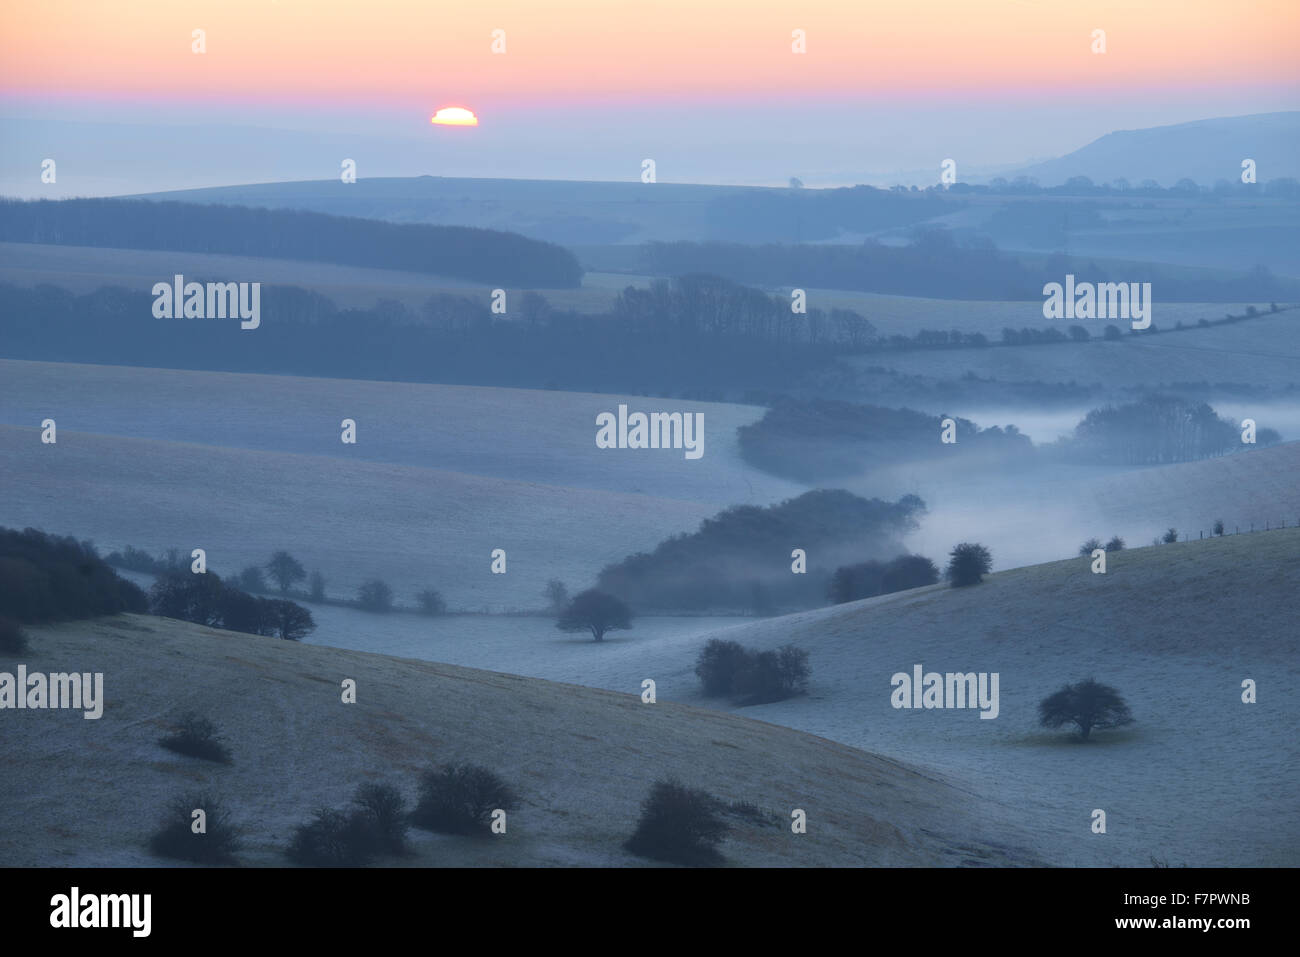 A misty view across the Sussex Downs at dawn, from Ditchling Beacon, East Sussex. Stock Photo